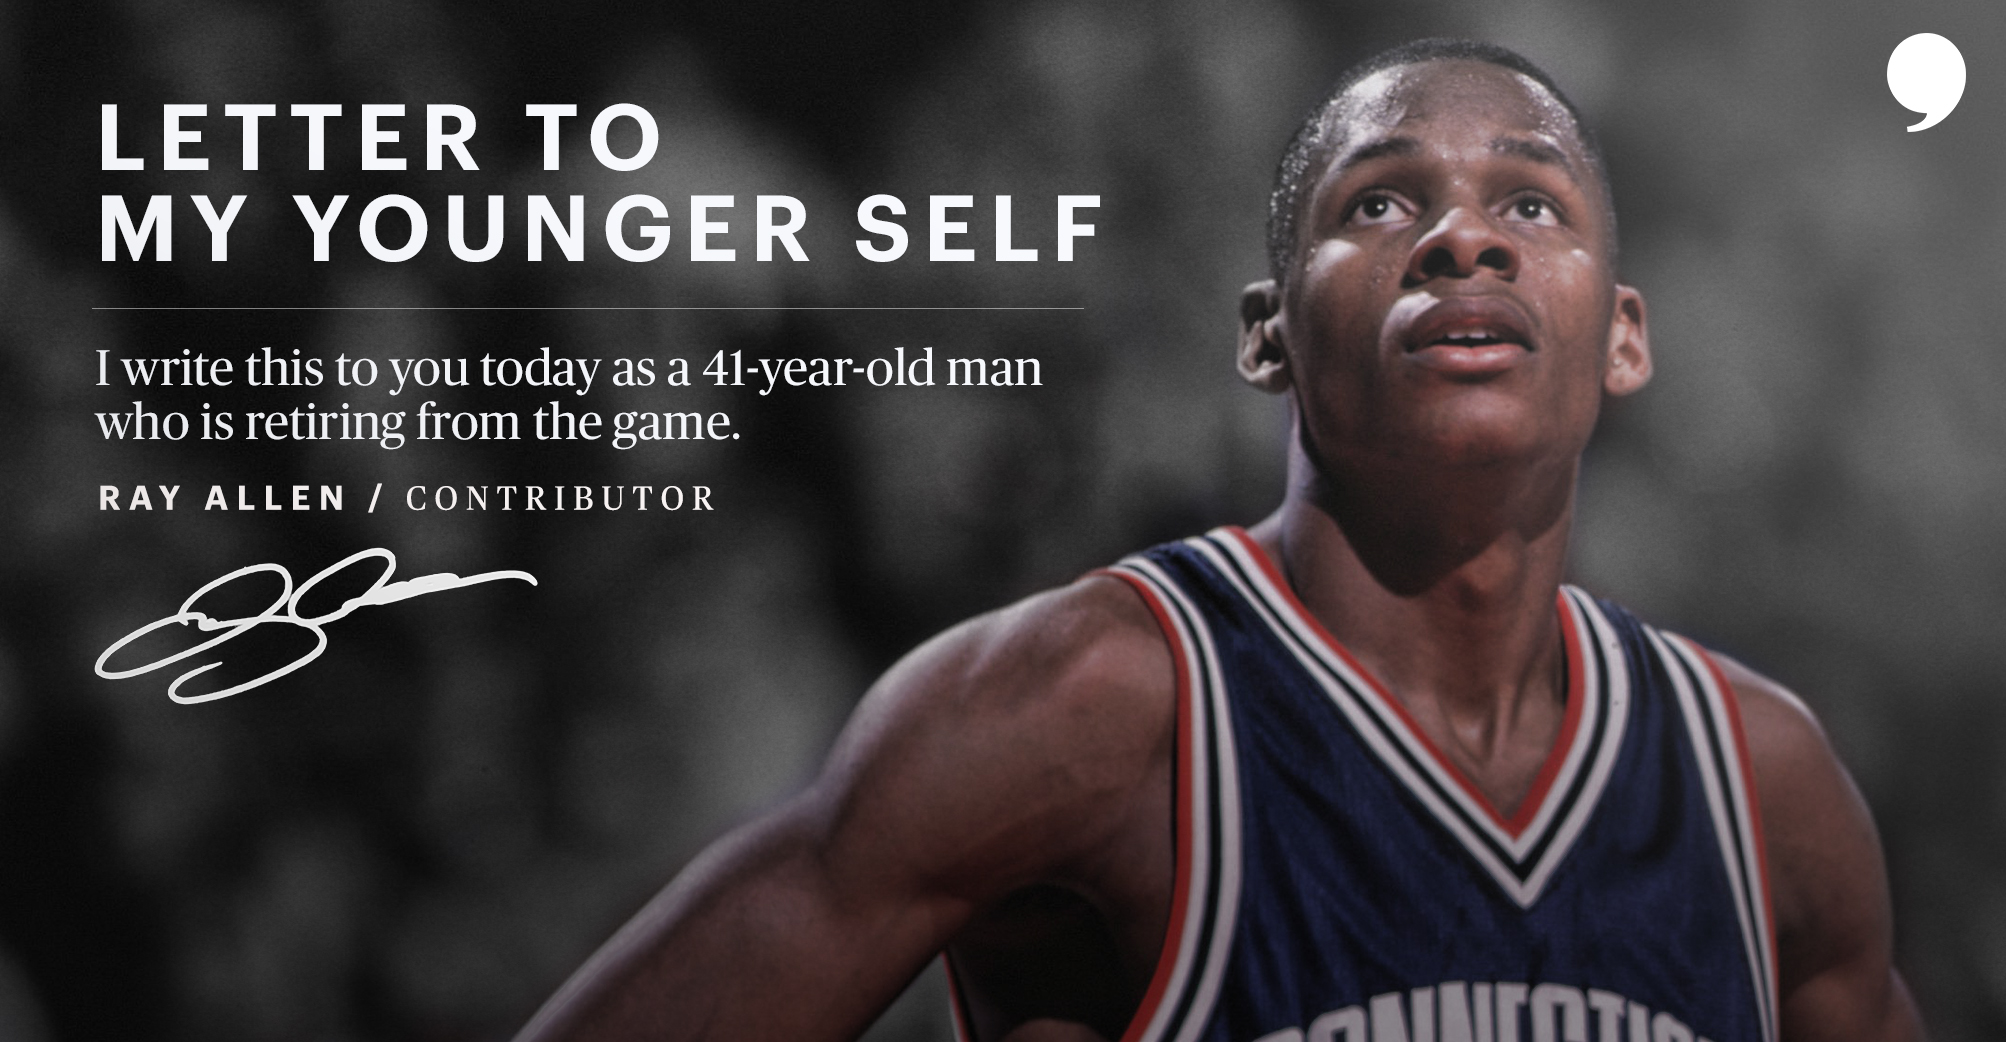 Letter To My Younger Self  By Ray Allen